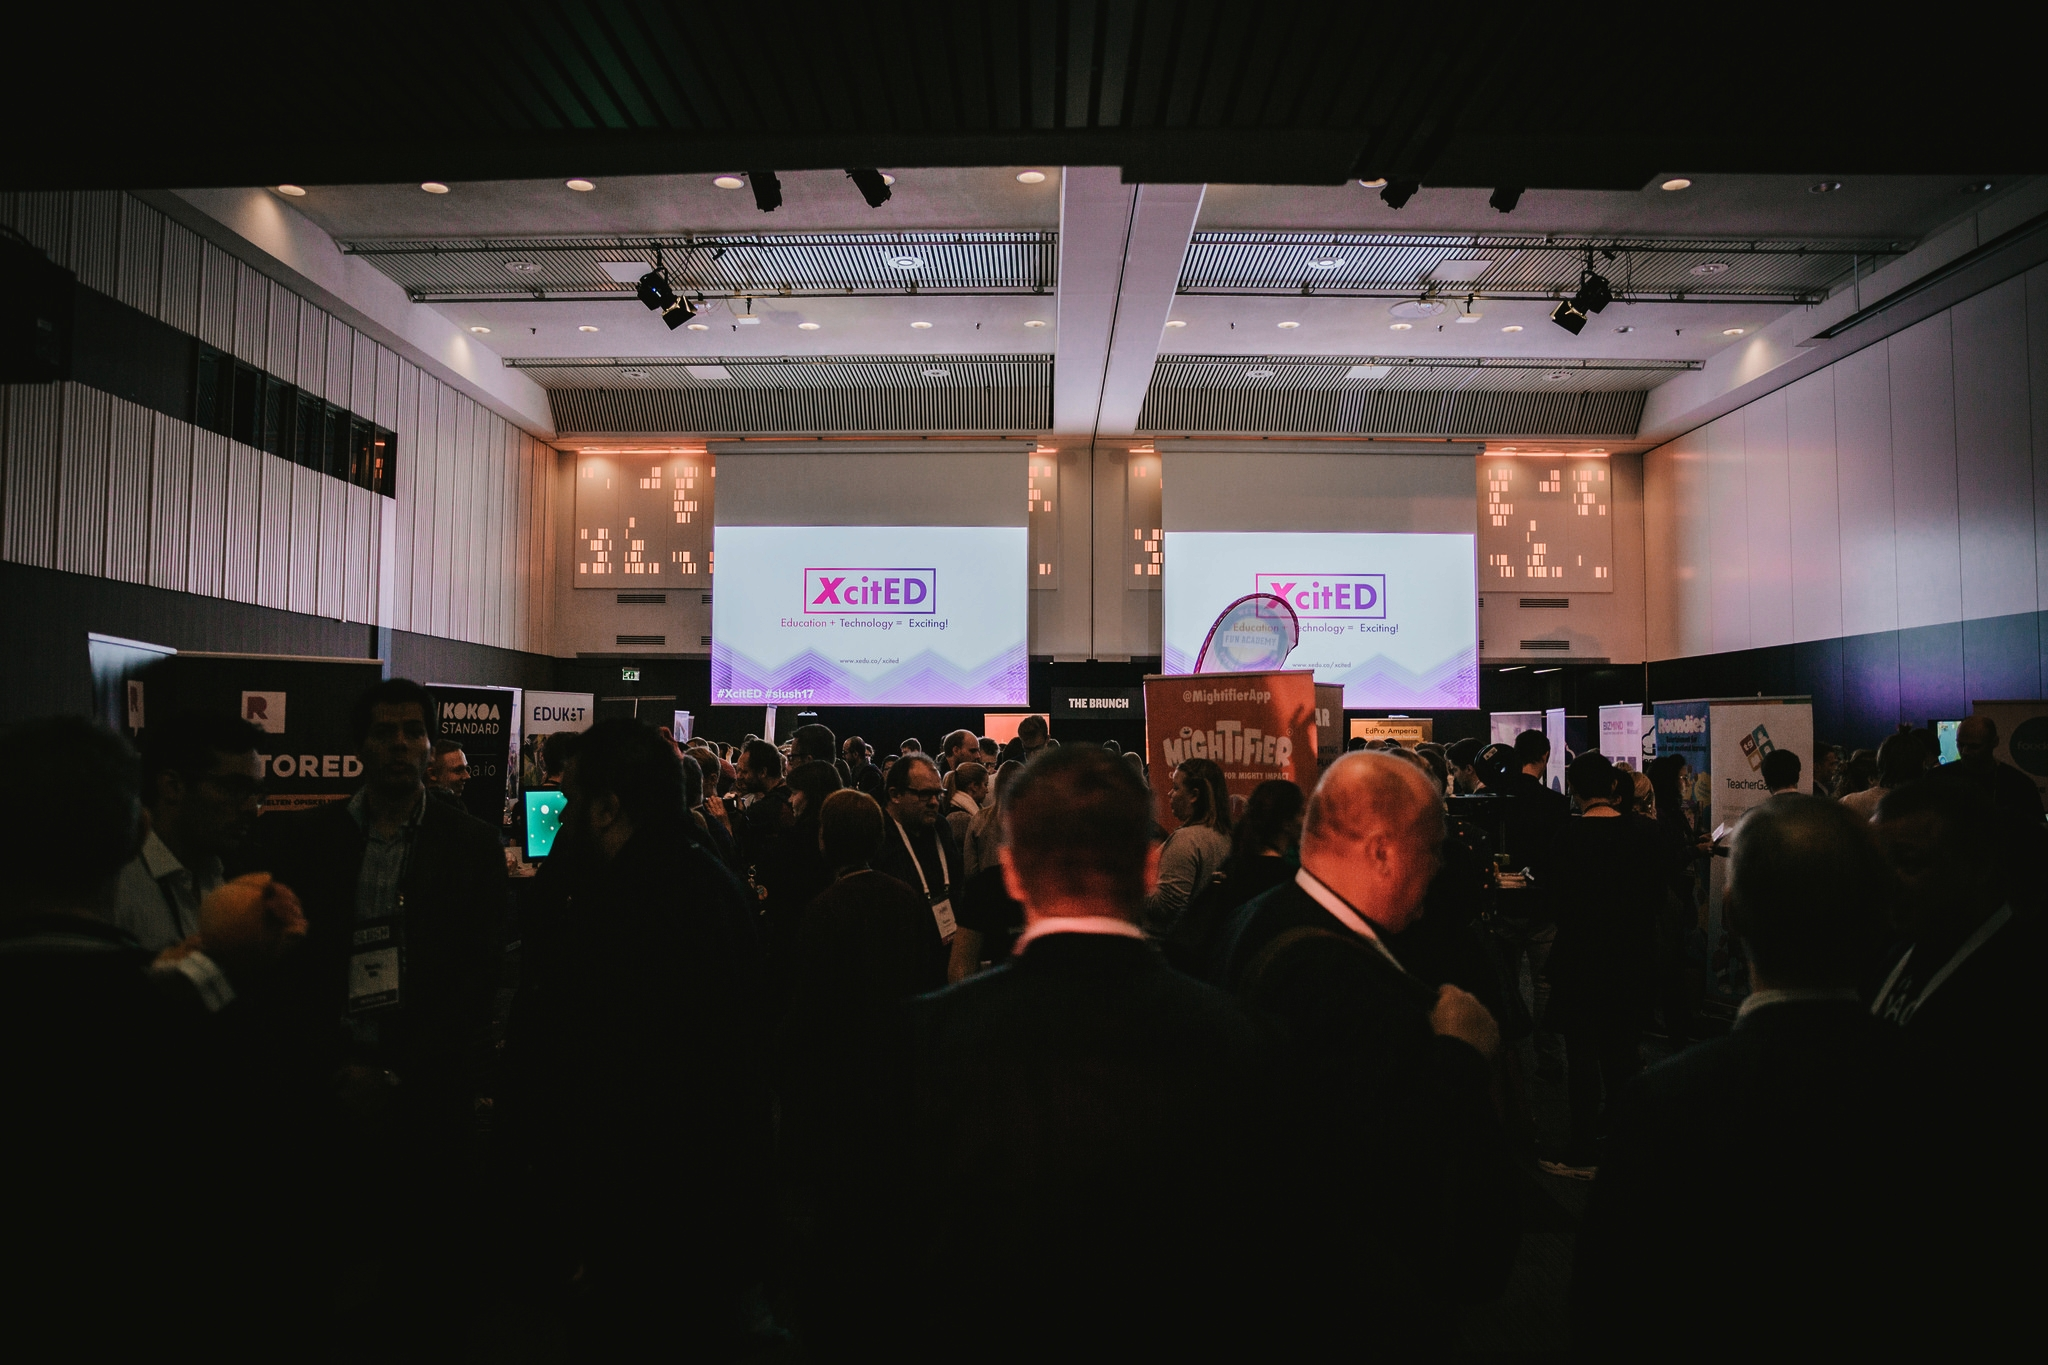 XcitED in Numbers - - More than 1000 people visited the event.- More than 260 viewers joined XcitED online stream provided by Telia Digitalist TV.- #XcitED was among the Top hashtags on 30 November with more than a million impressions.